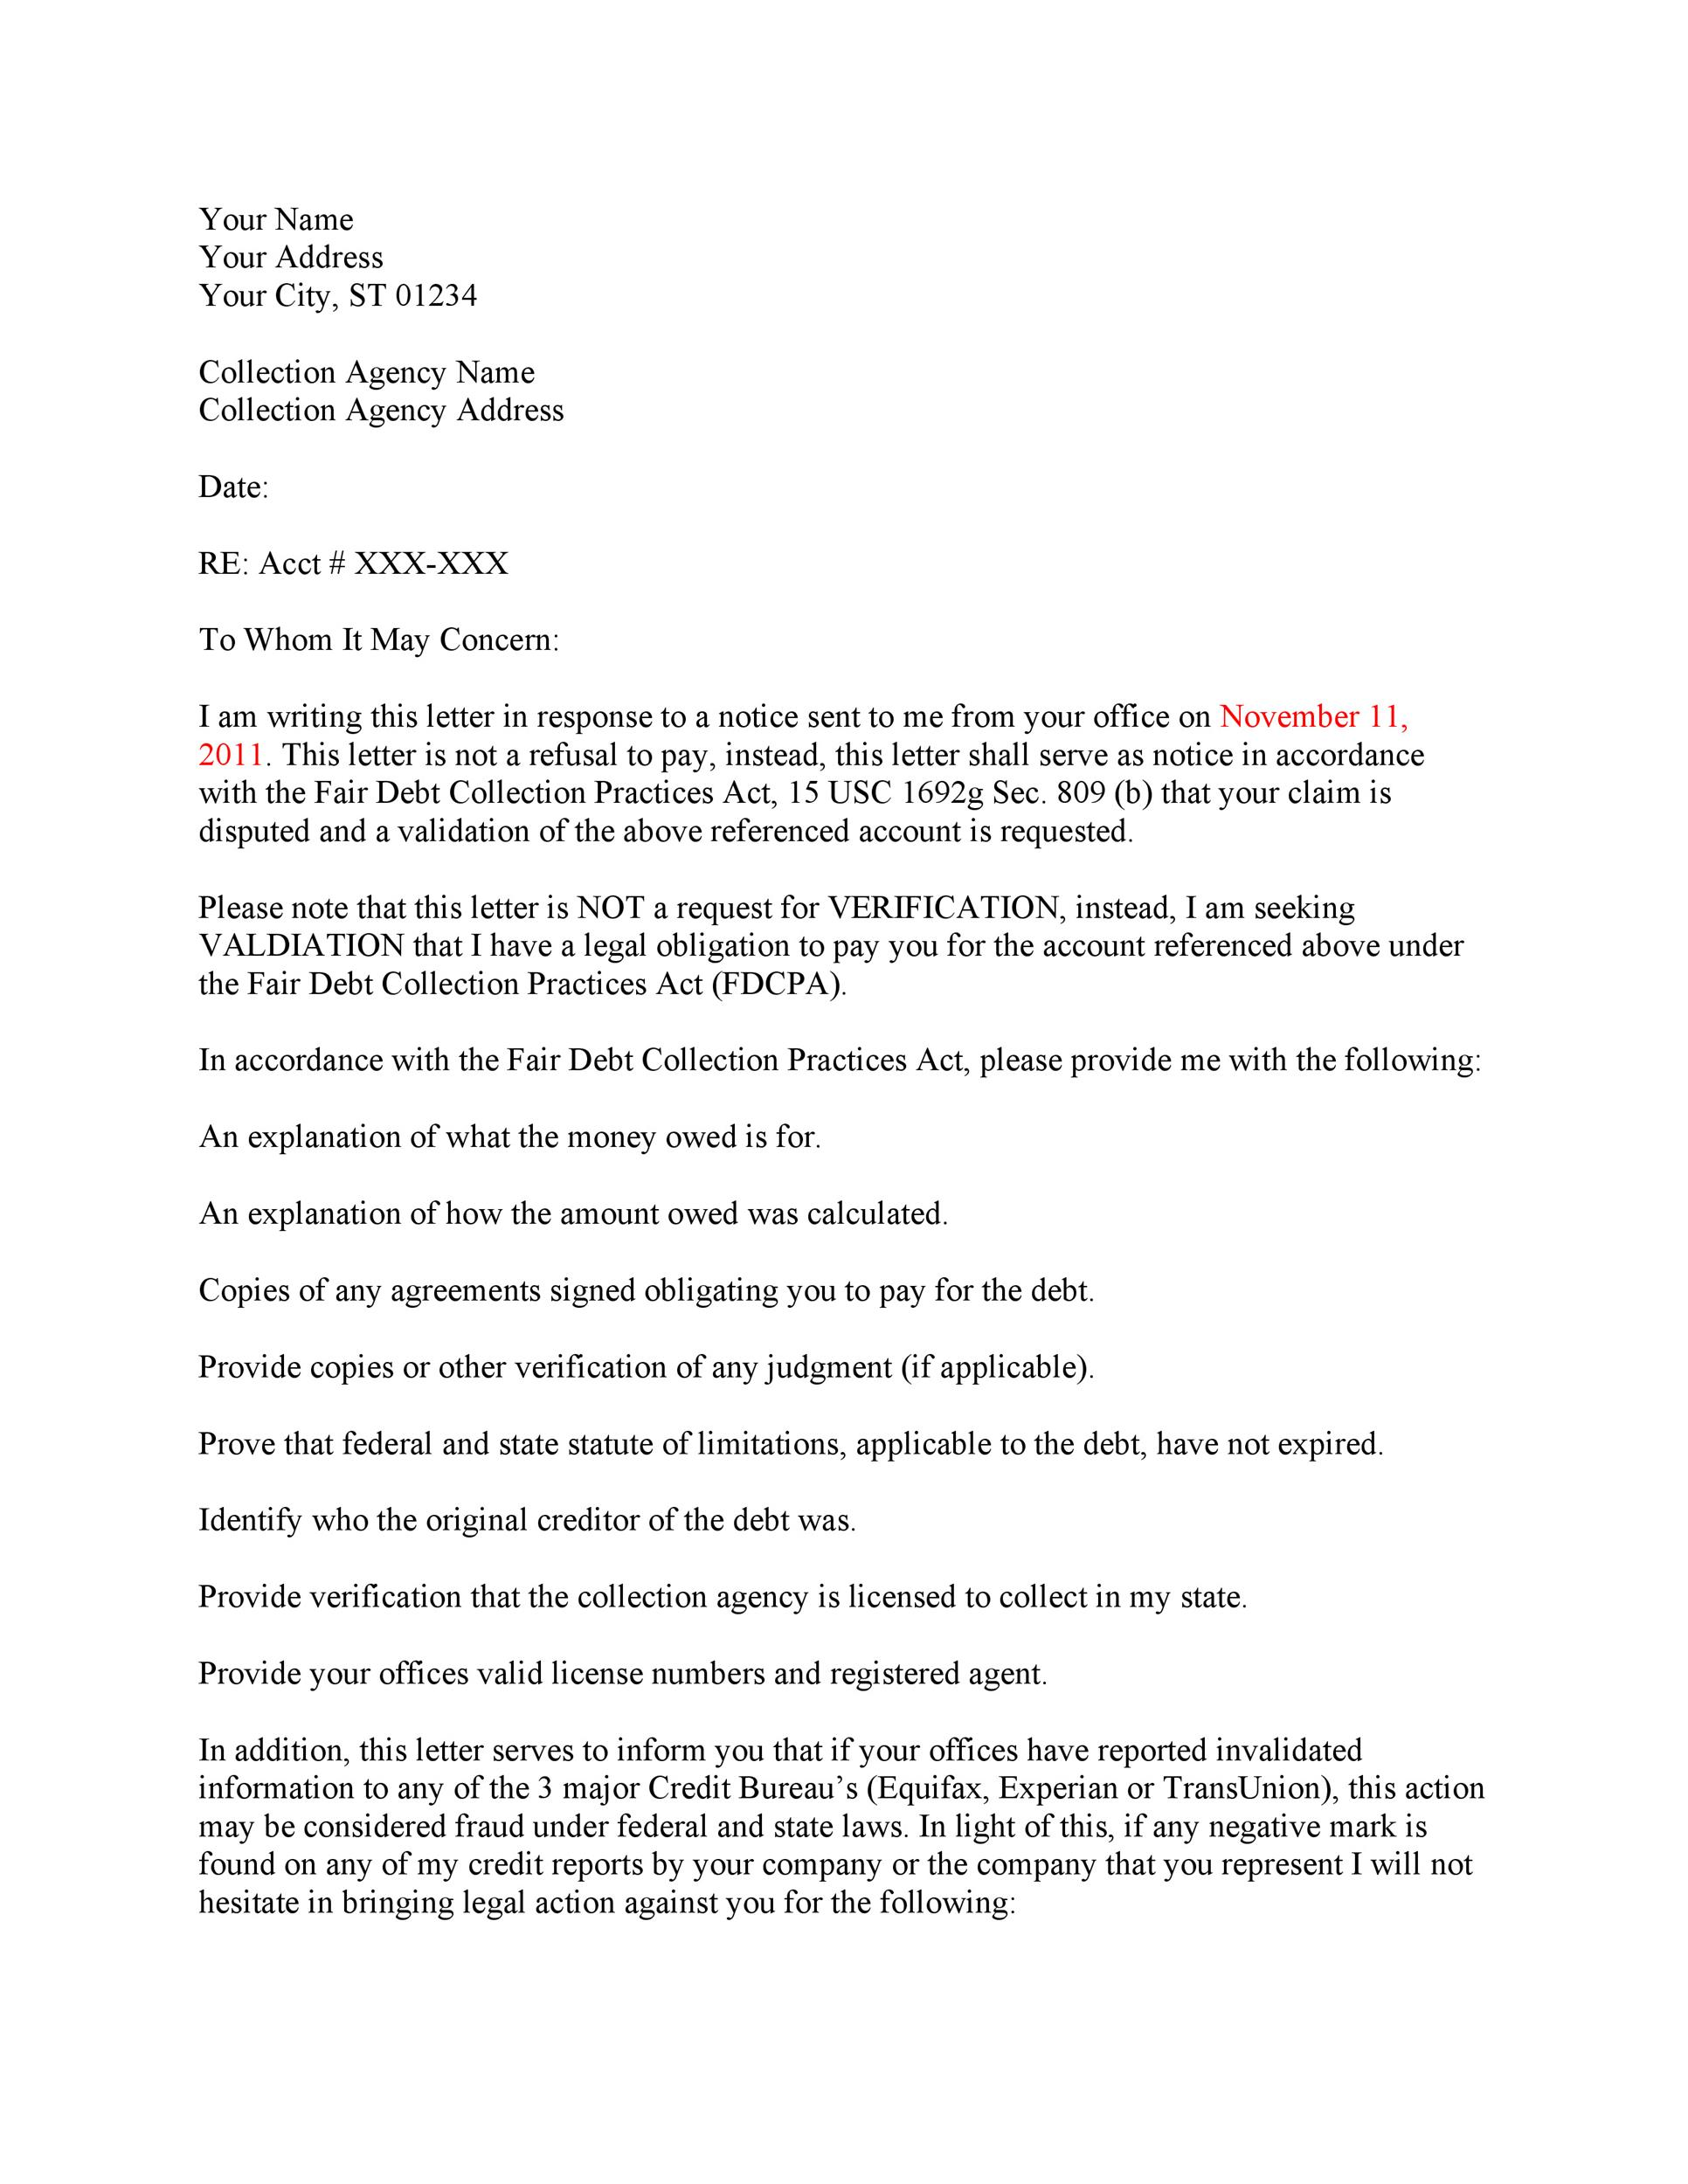 Free debt validation letter 22